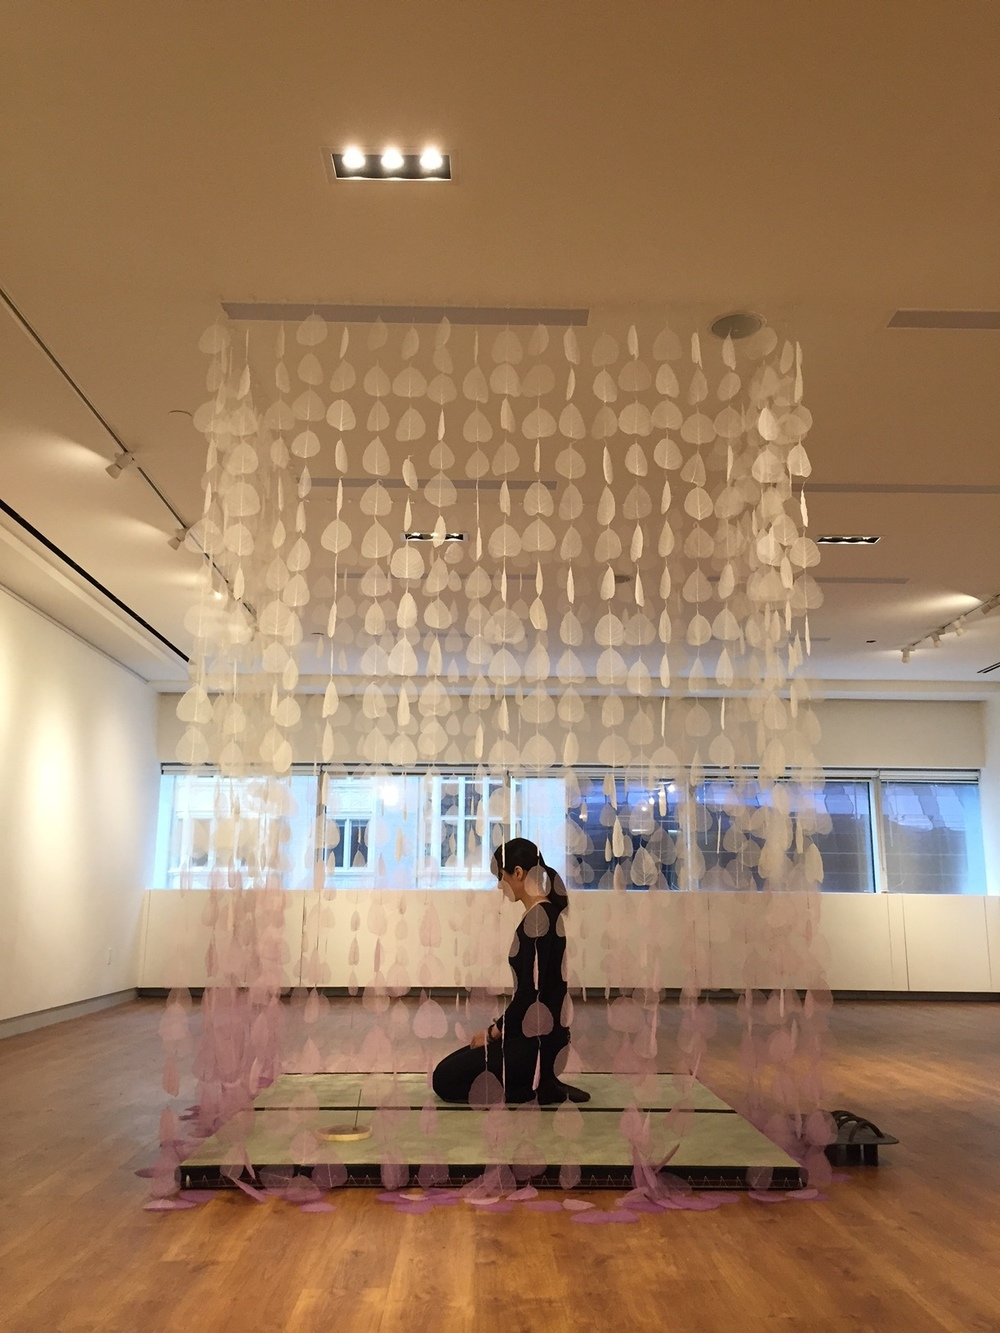 """MEDITATION ROOM"" (MEMORIAL FOR 3/11 TOHOKU EARTHQUAKE AND TSUNAMI), 84"" X 84"" X 84"", DYED BODHI SKELETON LEAVES, MONOFILAMENT, TATAMI MATS, STEEL SCULPTURE, INCENSE. NIPPON CLUB NYC"